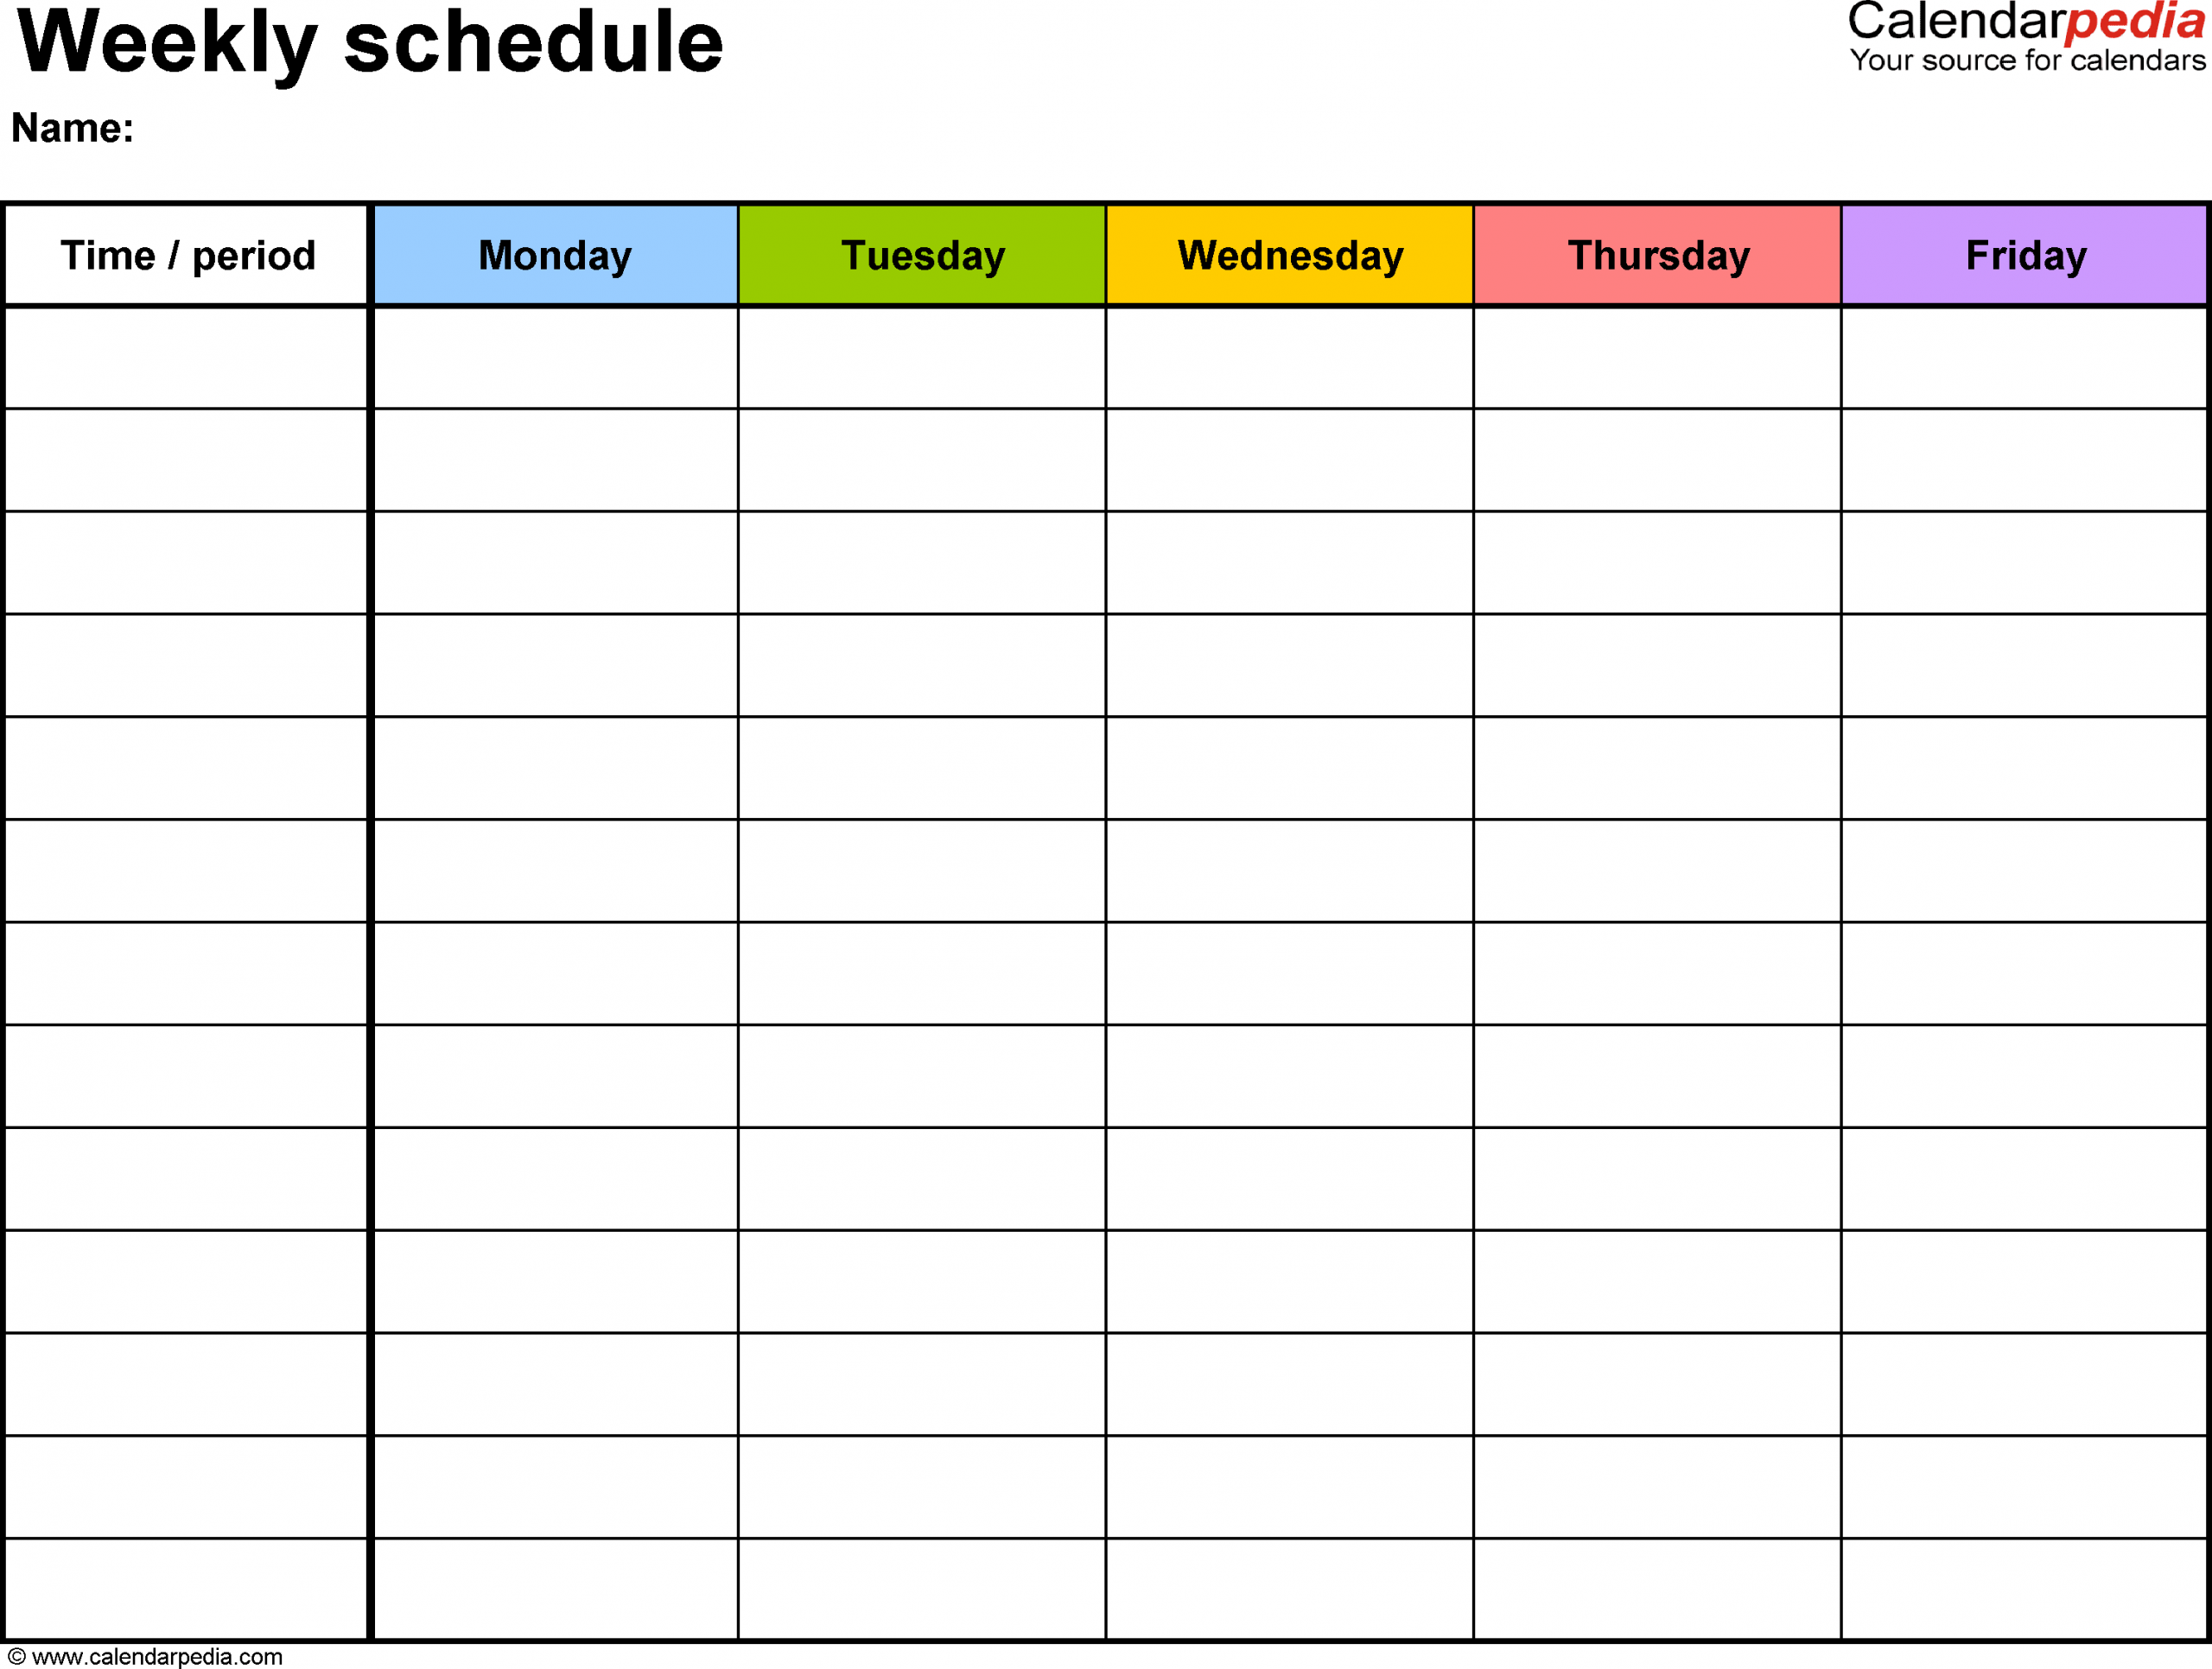 Weekly Calendar Template Fotolip Rich Image And 2